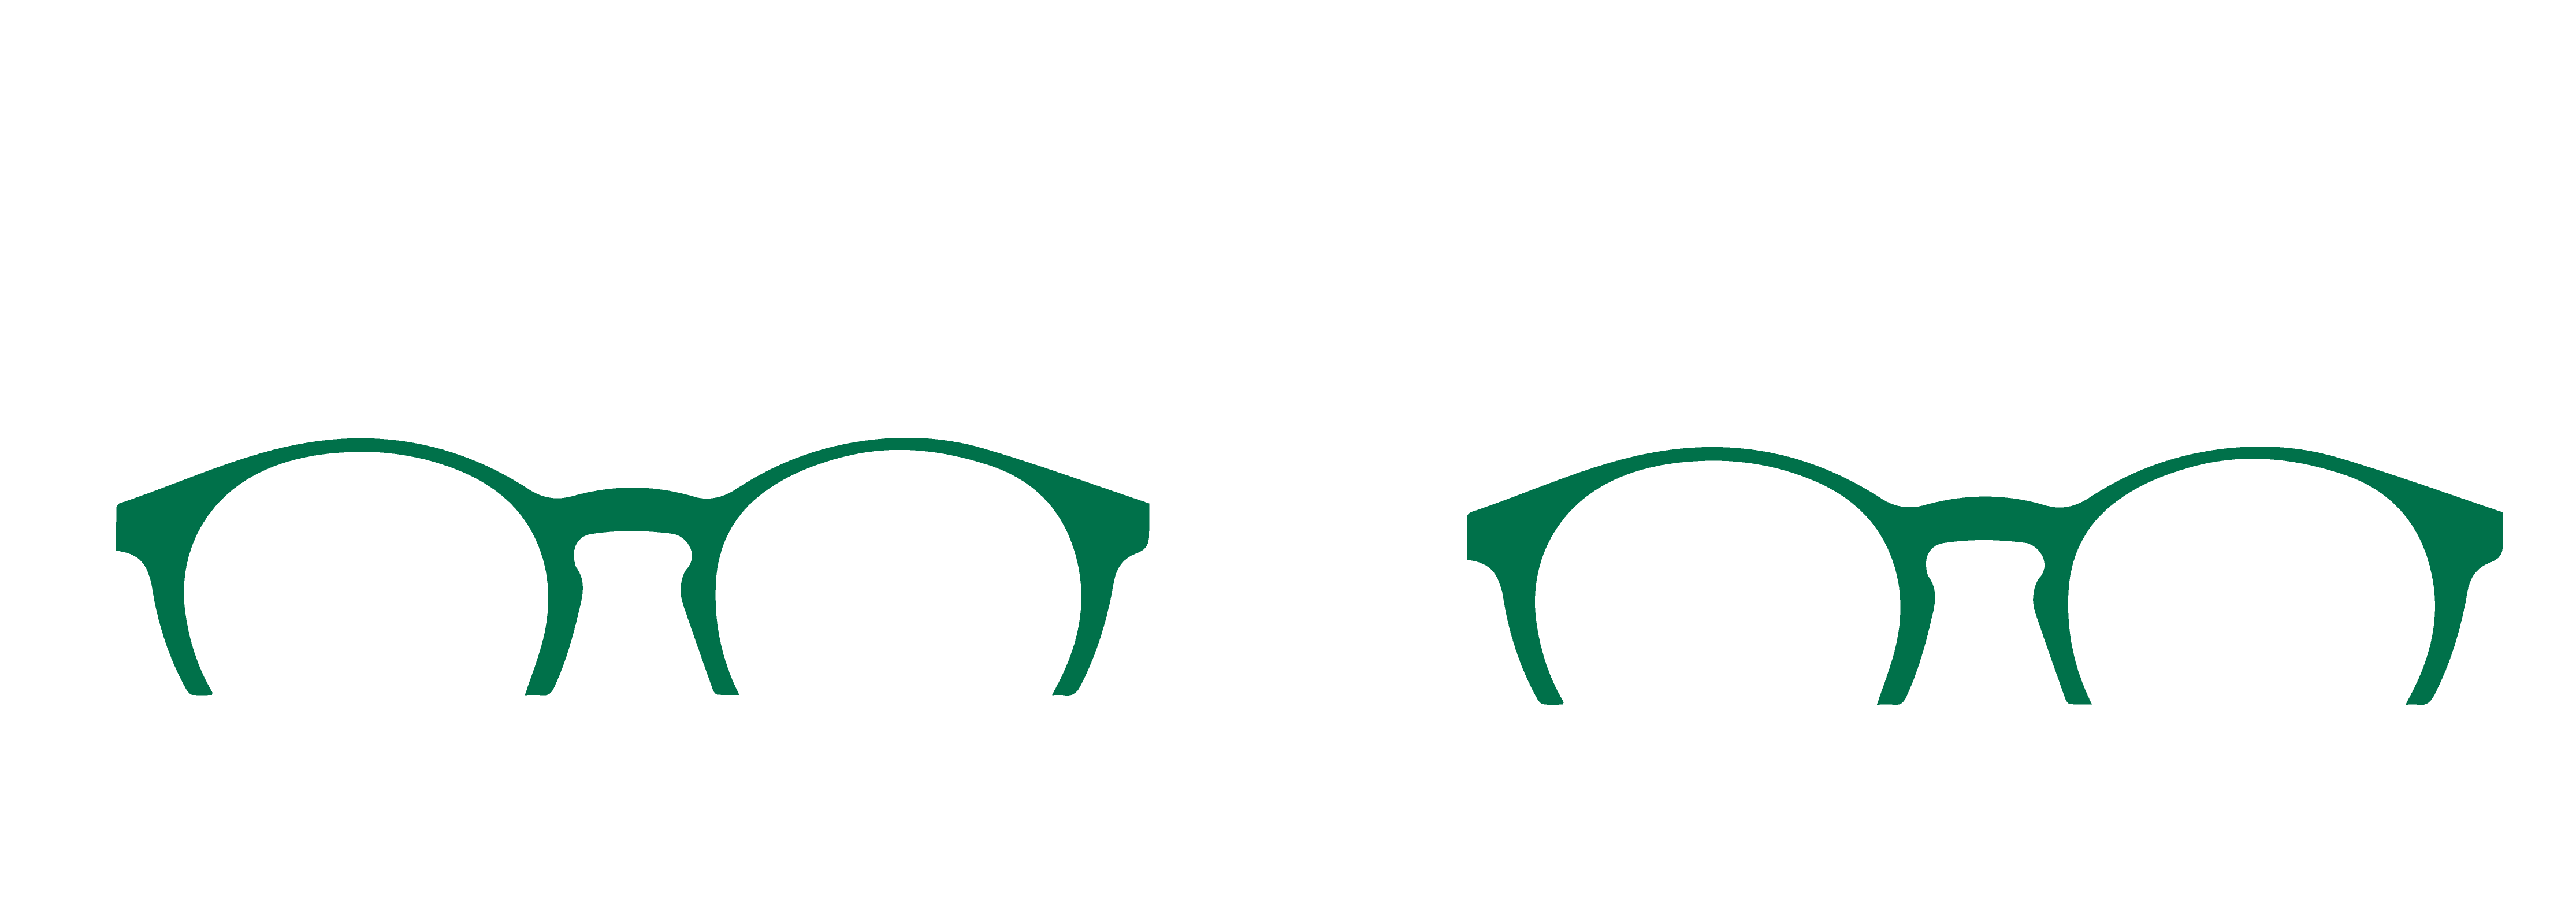 Eyes on Broadway and Rexine Family Eyecare